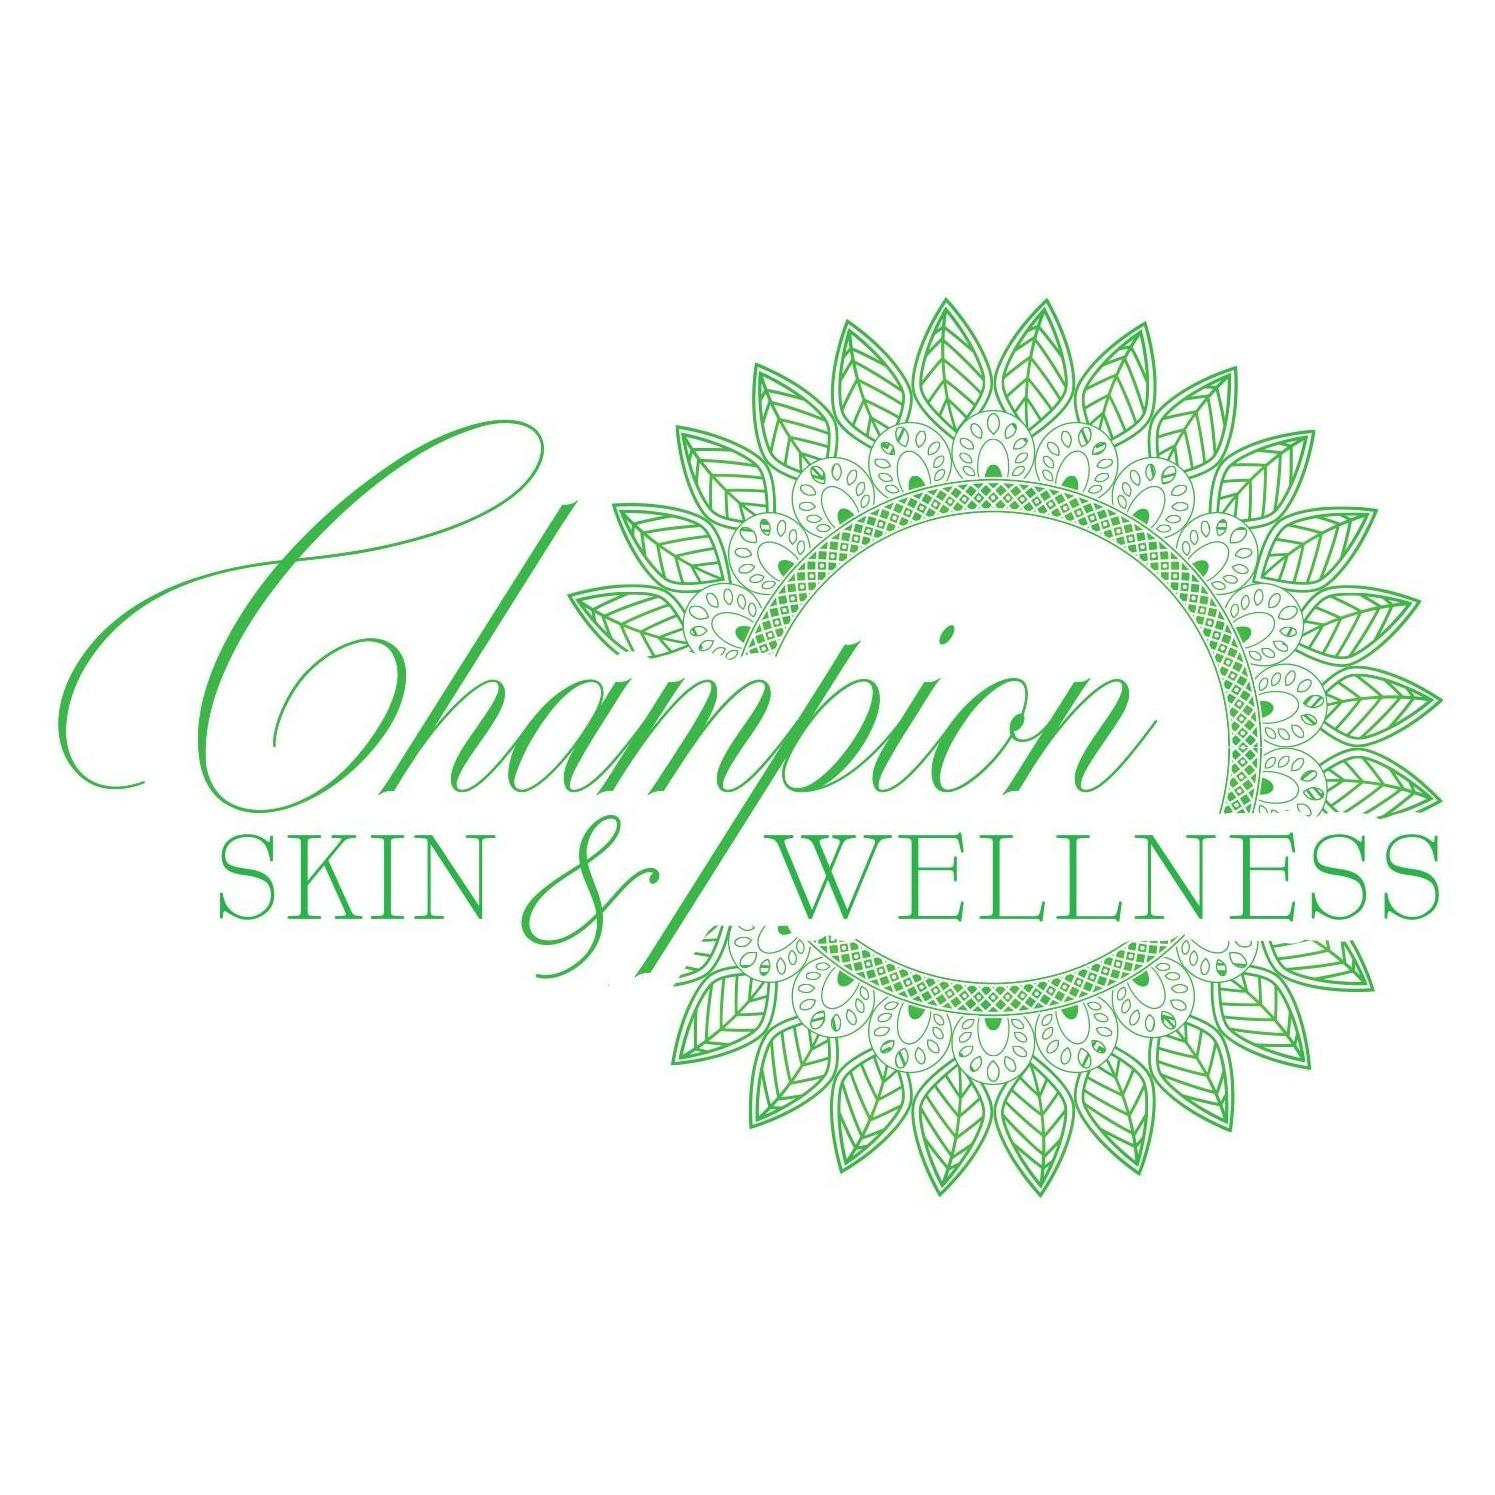 Champion Skin and Wellness image 18